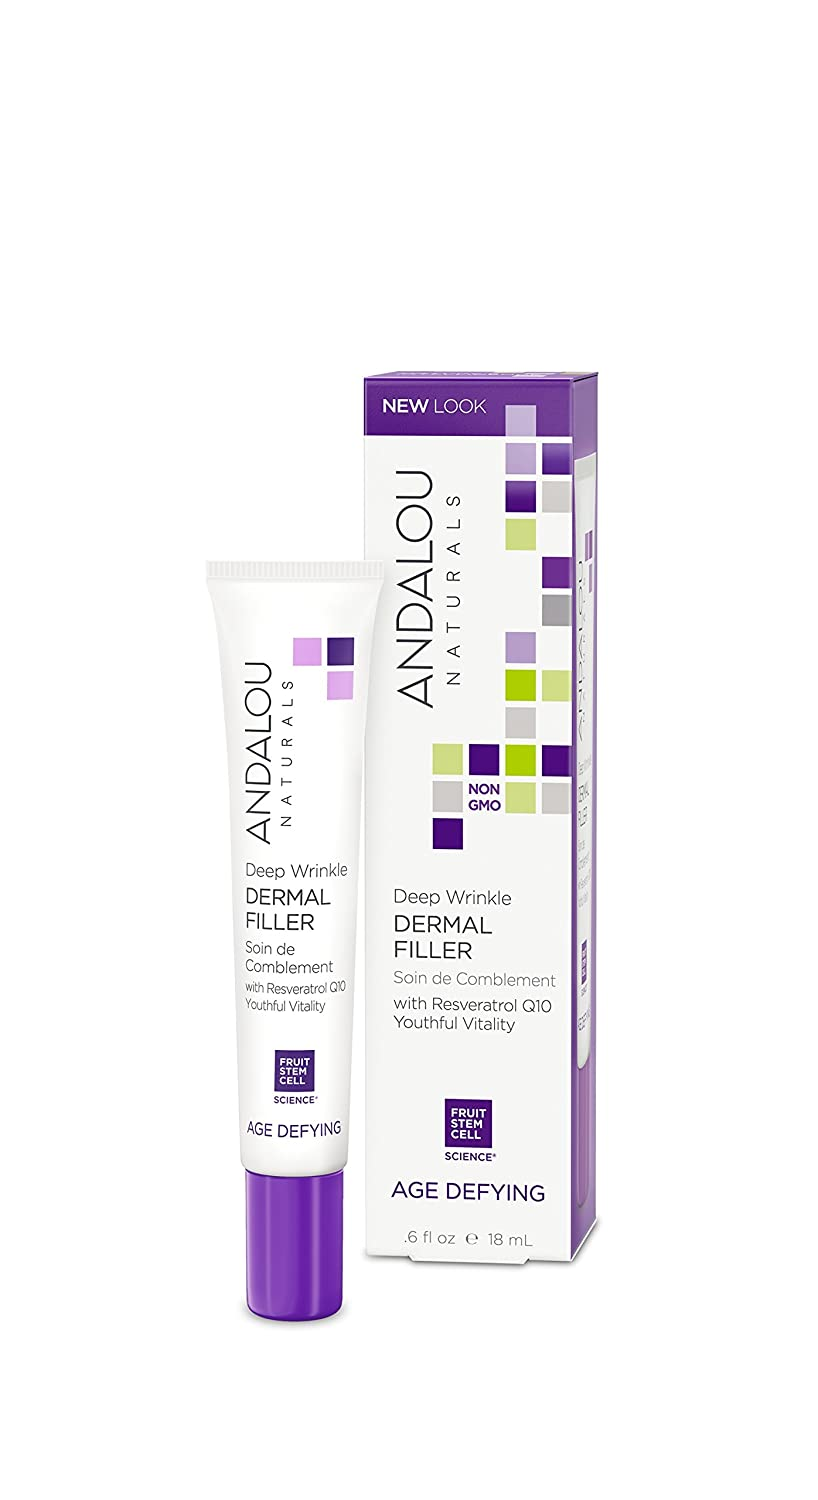 Andalou Naturals Deep Wrinkle Dermal Filler, Aloe Vera, 0.6 Fl Oz